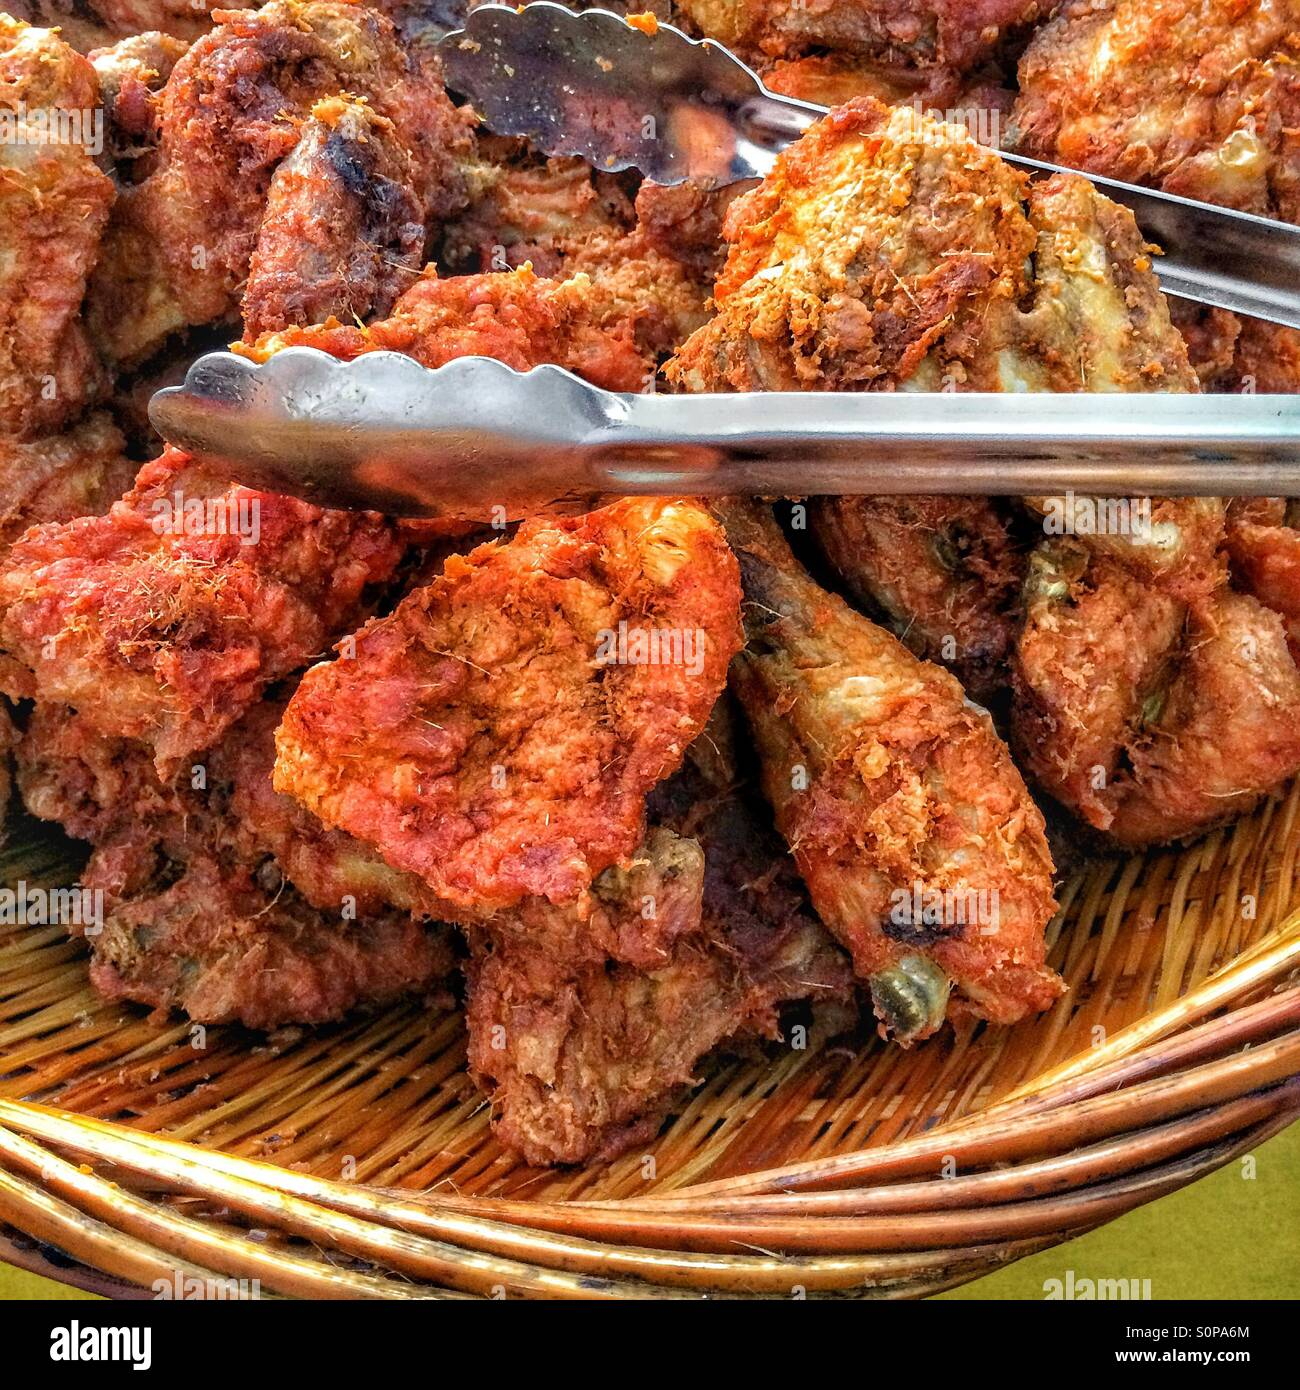 Fried chicken - Stock Image